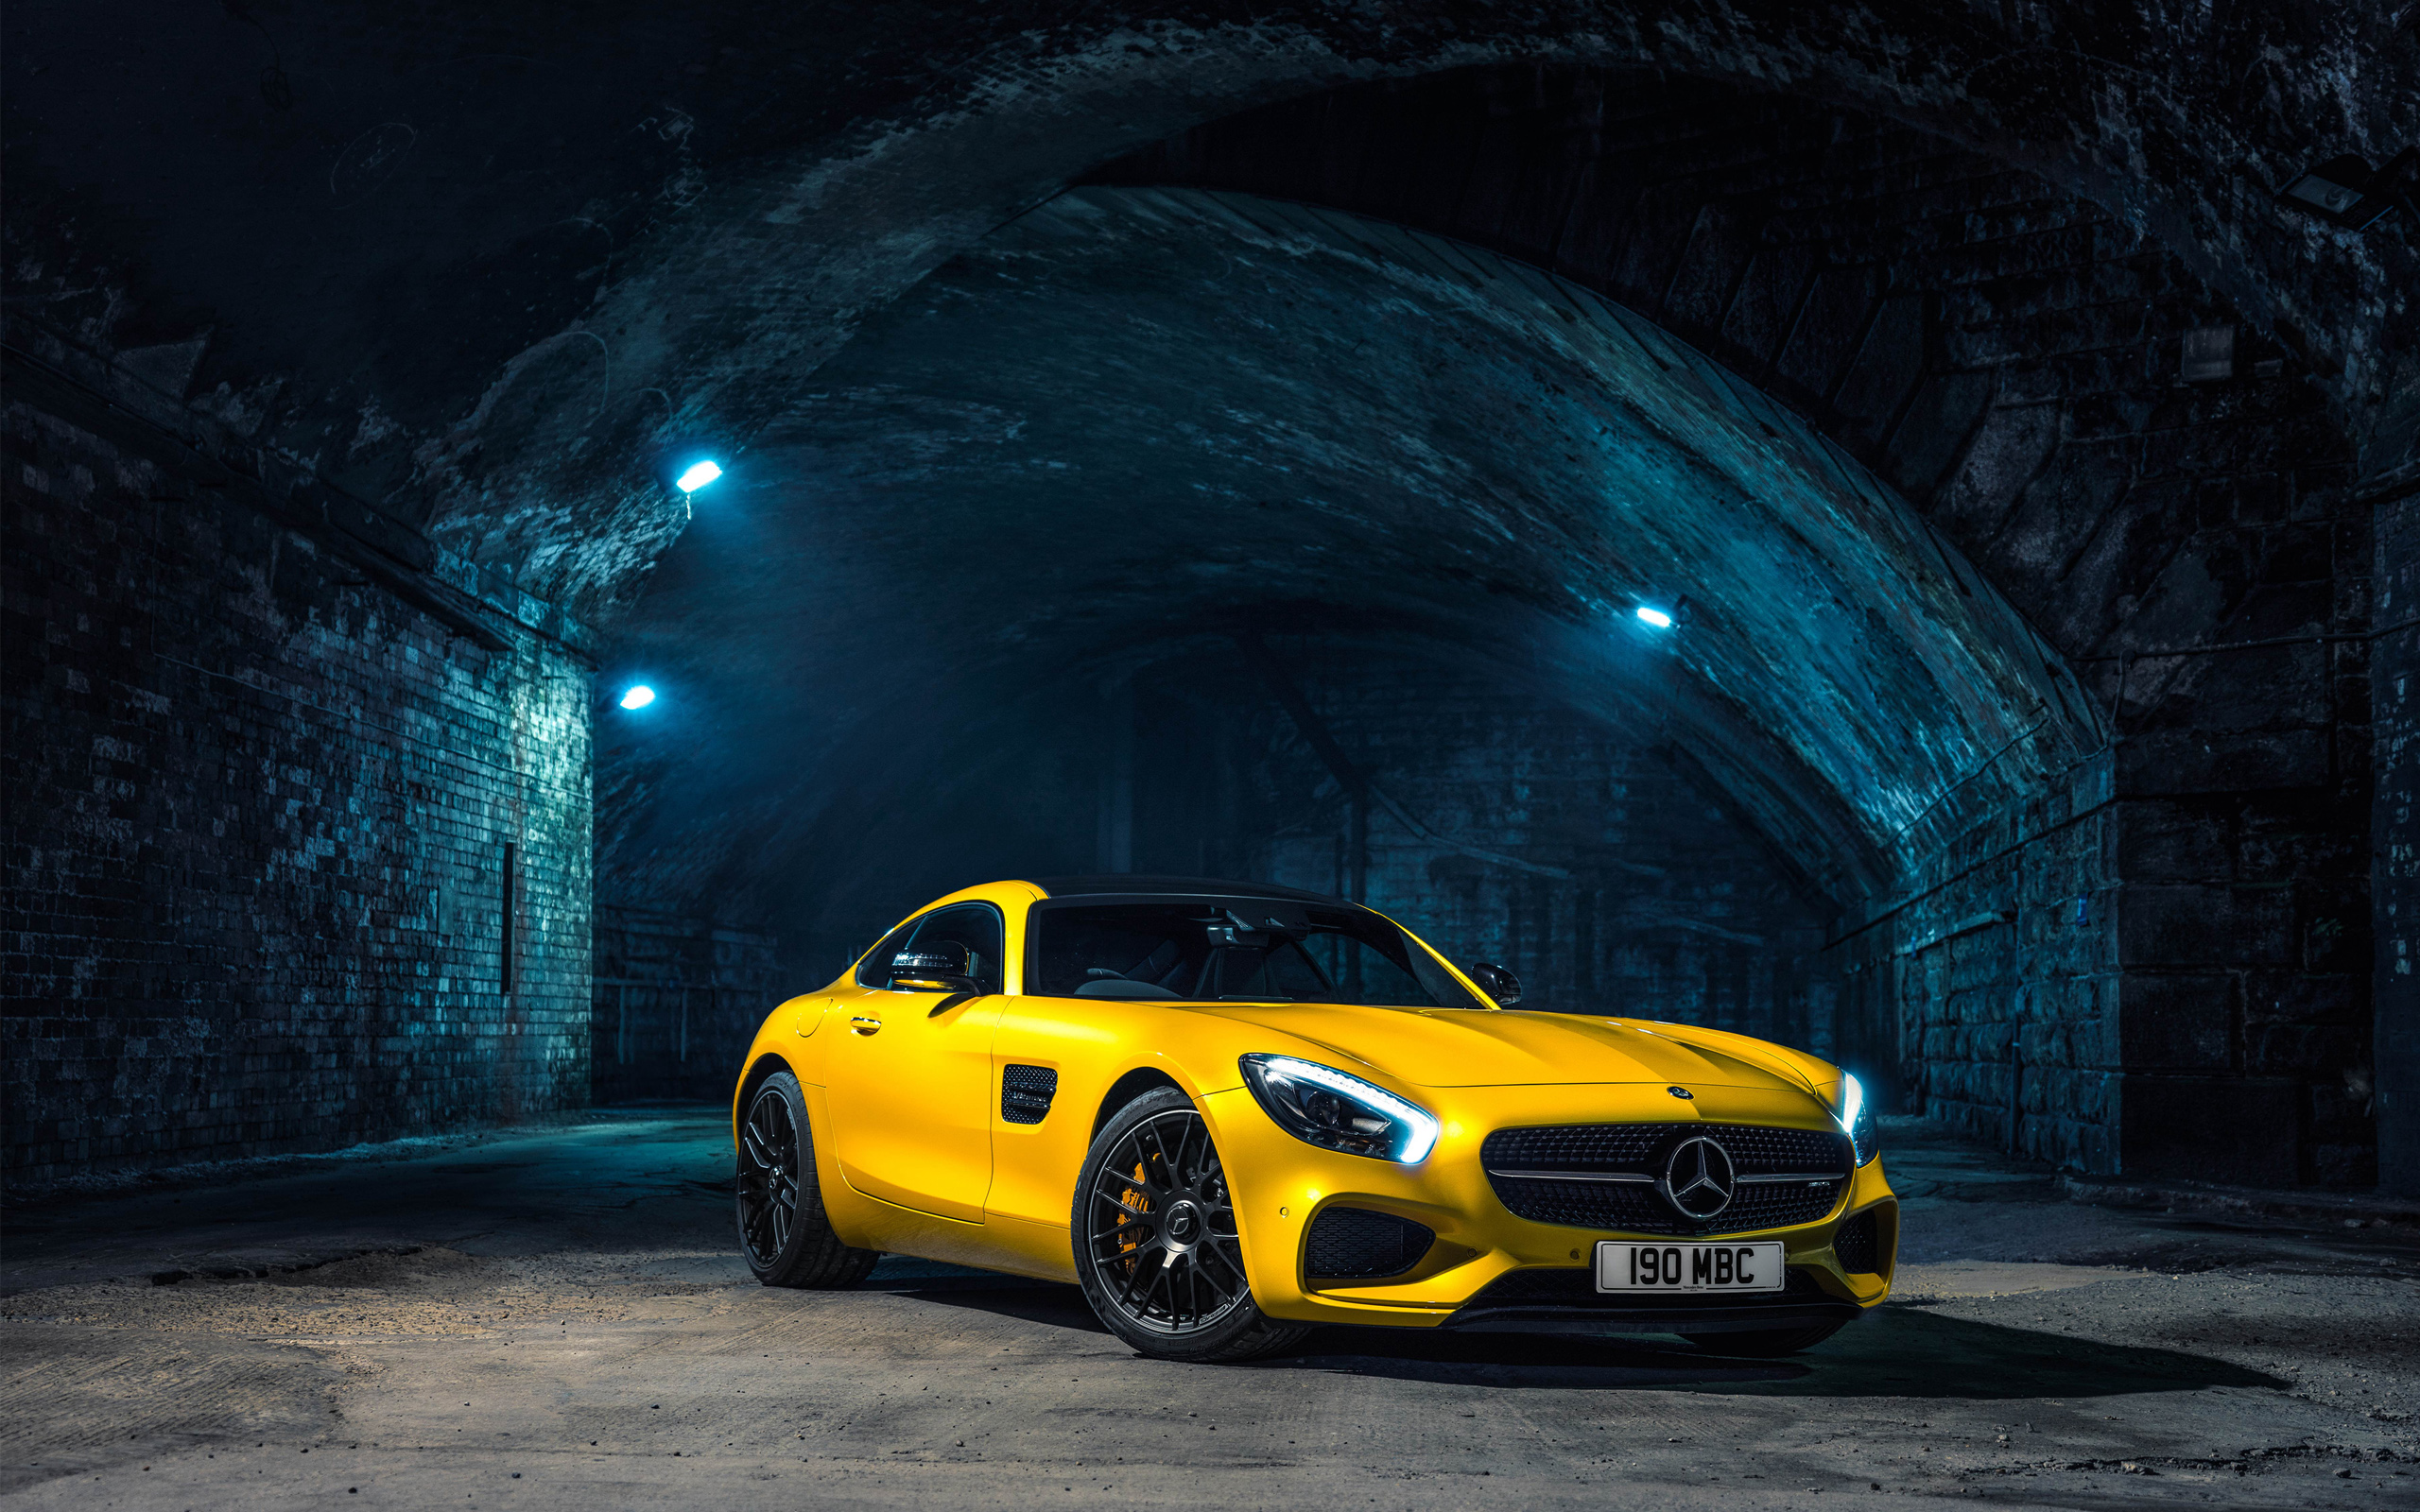 Ultra Hd Wallpapers Iphone X 2015 Mercedes Amg Gt S Wallpaper Hd Car Wallpapers Id